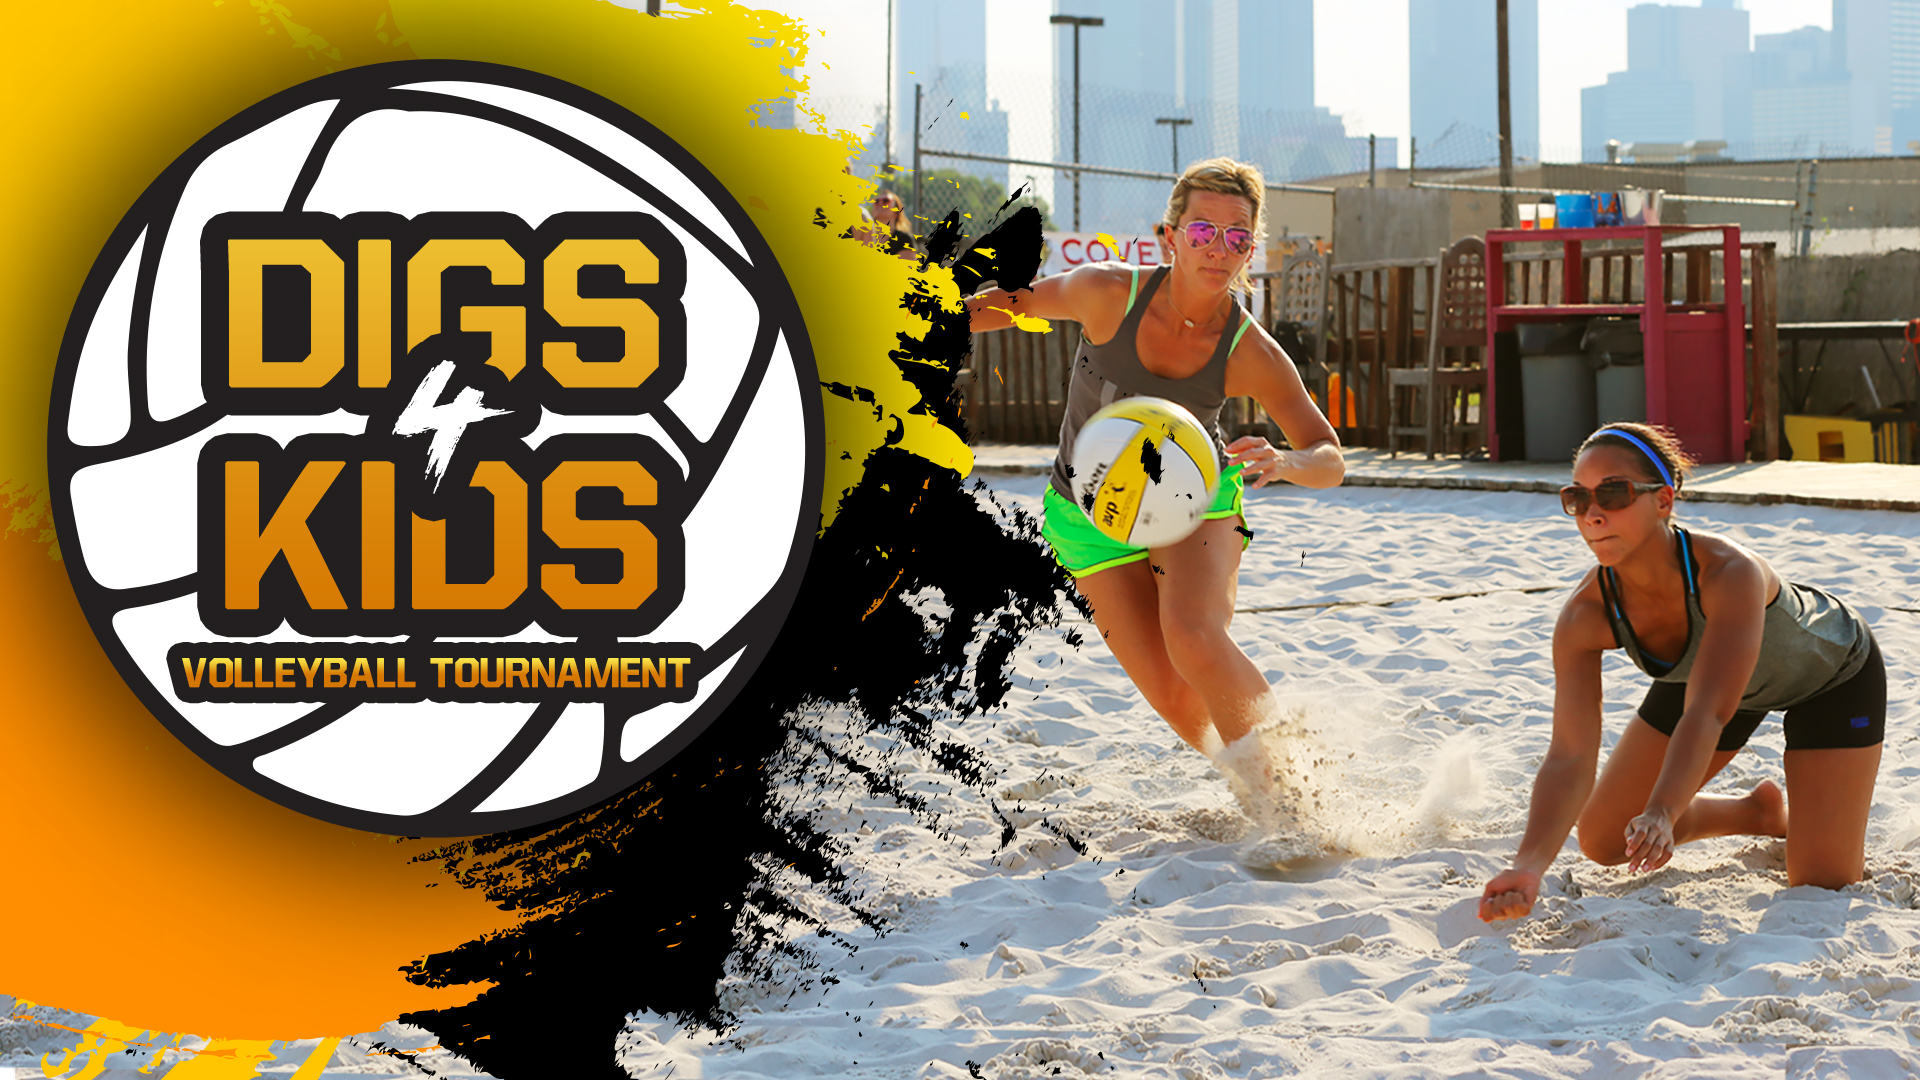 Digs for Kids Volleyball Tournament